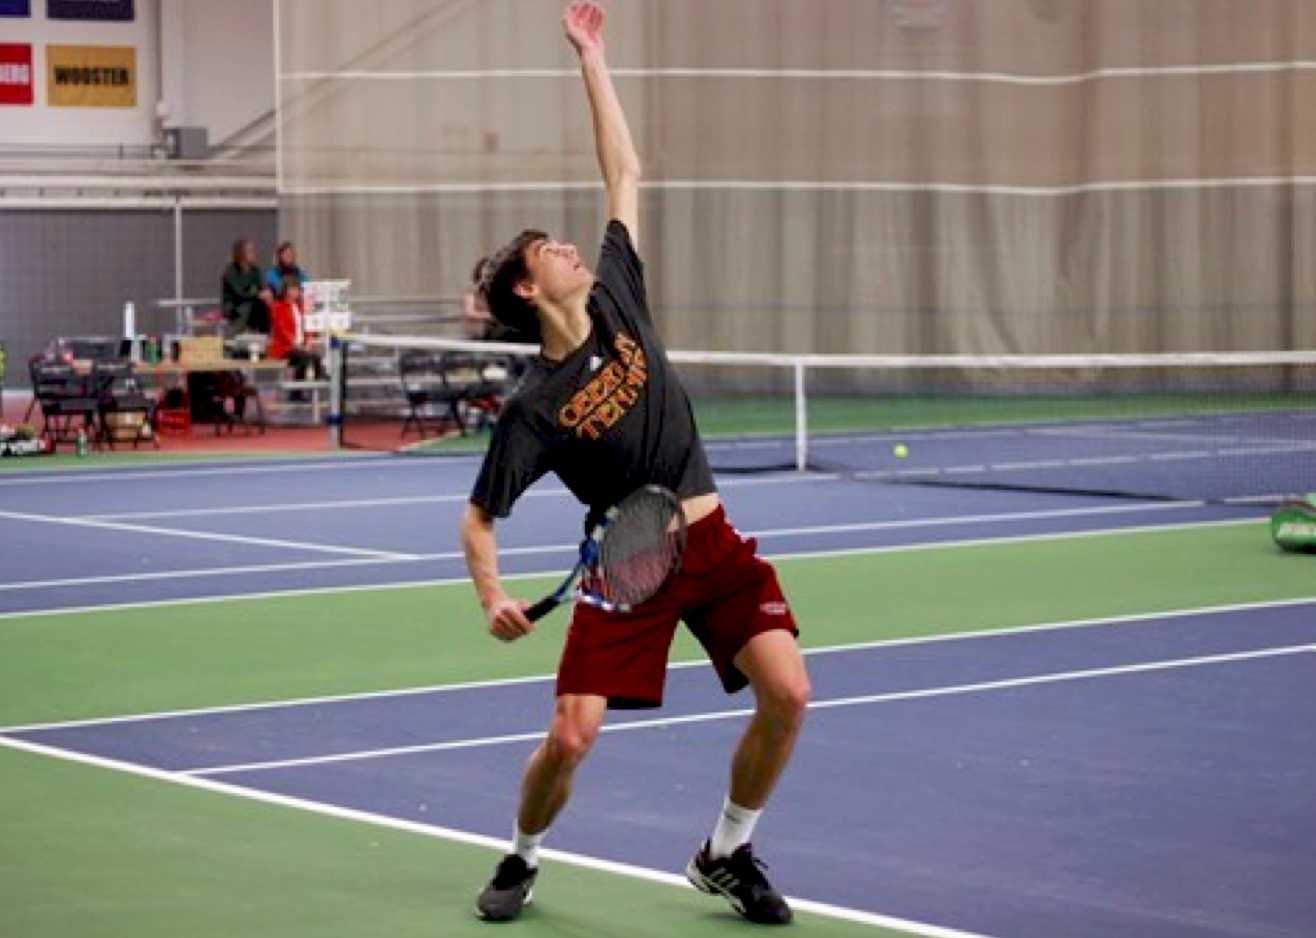 Junior Abe Davis lofts the ball up to serve to Fernando Sousa and Mikel Oscoz of Indiana Tech Saturday. Davis and his senior partner Callan Louis defeated their Indiana Tech opponents 8–5 in doubles action, and the duo each earned wins in singles play to contribute to the Yeomen's 6–3 win in the afternoon.